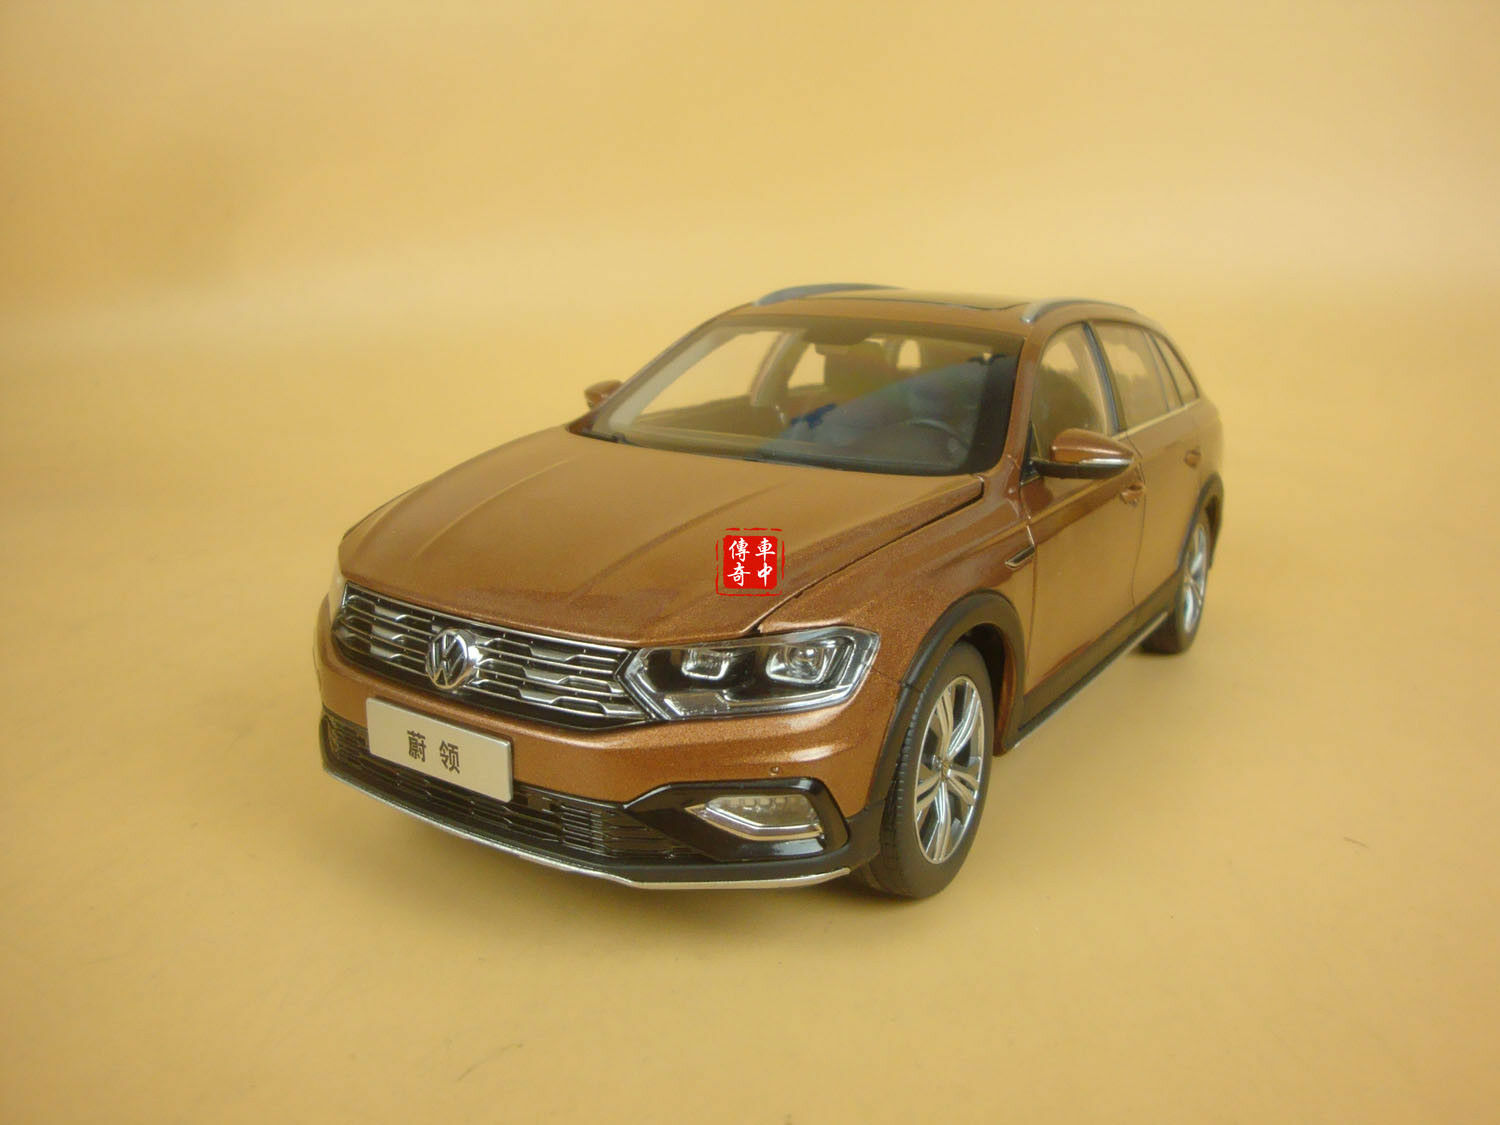 1 18 Volkswagen C-Trek C-Trek Modelo Diecast Coloree Marrone + Regalo